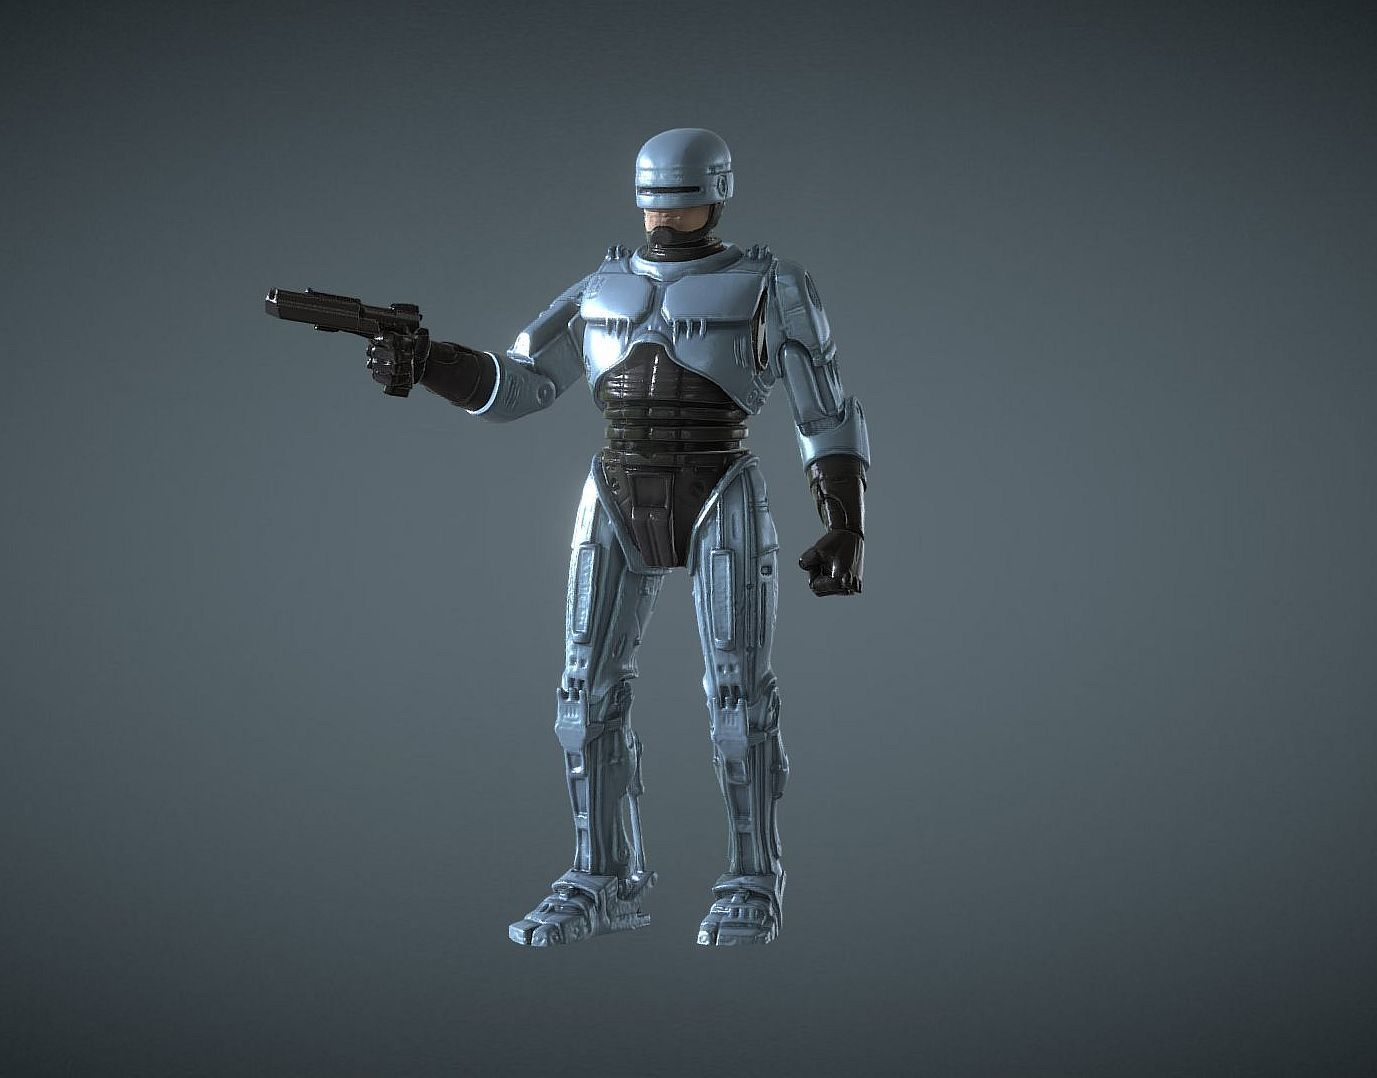 CAPTURE_003.jpg Download STL file ROBOCOP INSPIRITED FIGURE • Design to 3D print, Masterclip